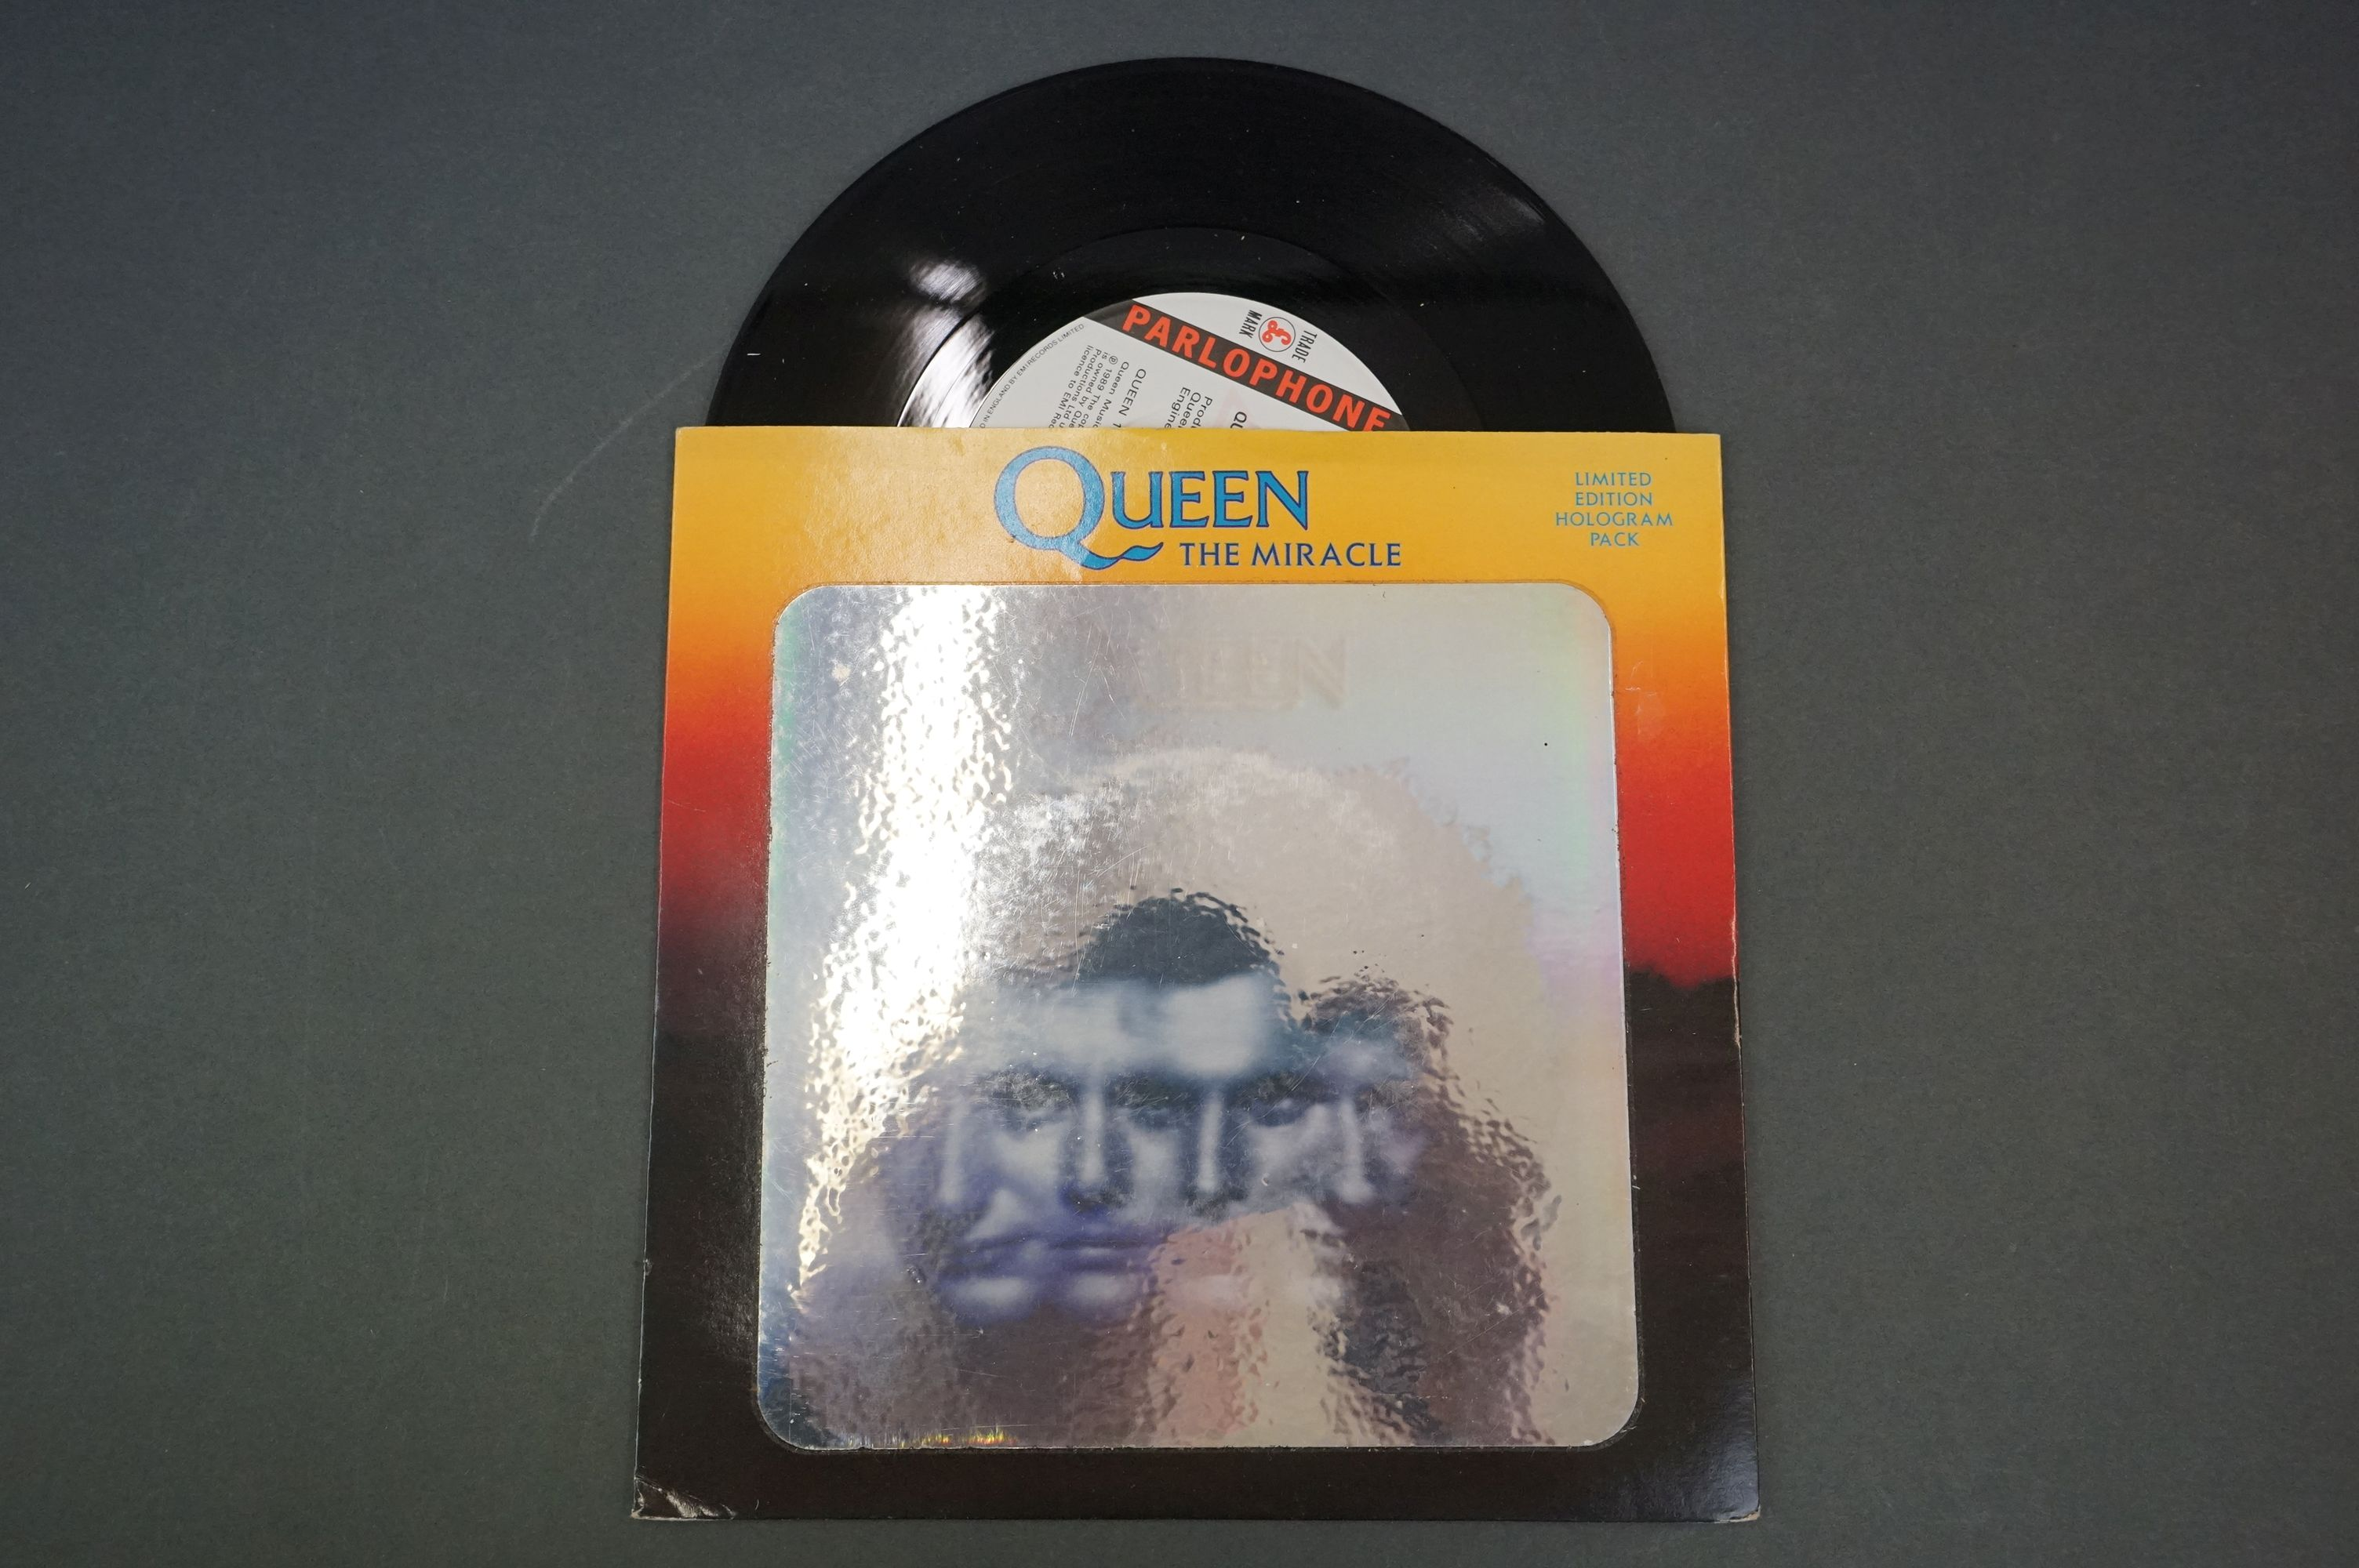 Vinyl - Queen & related collection of 7 inch singles including 12 x No One But You Ltd Edn picture - Image 8 of 11